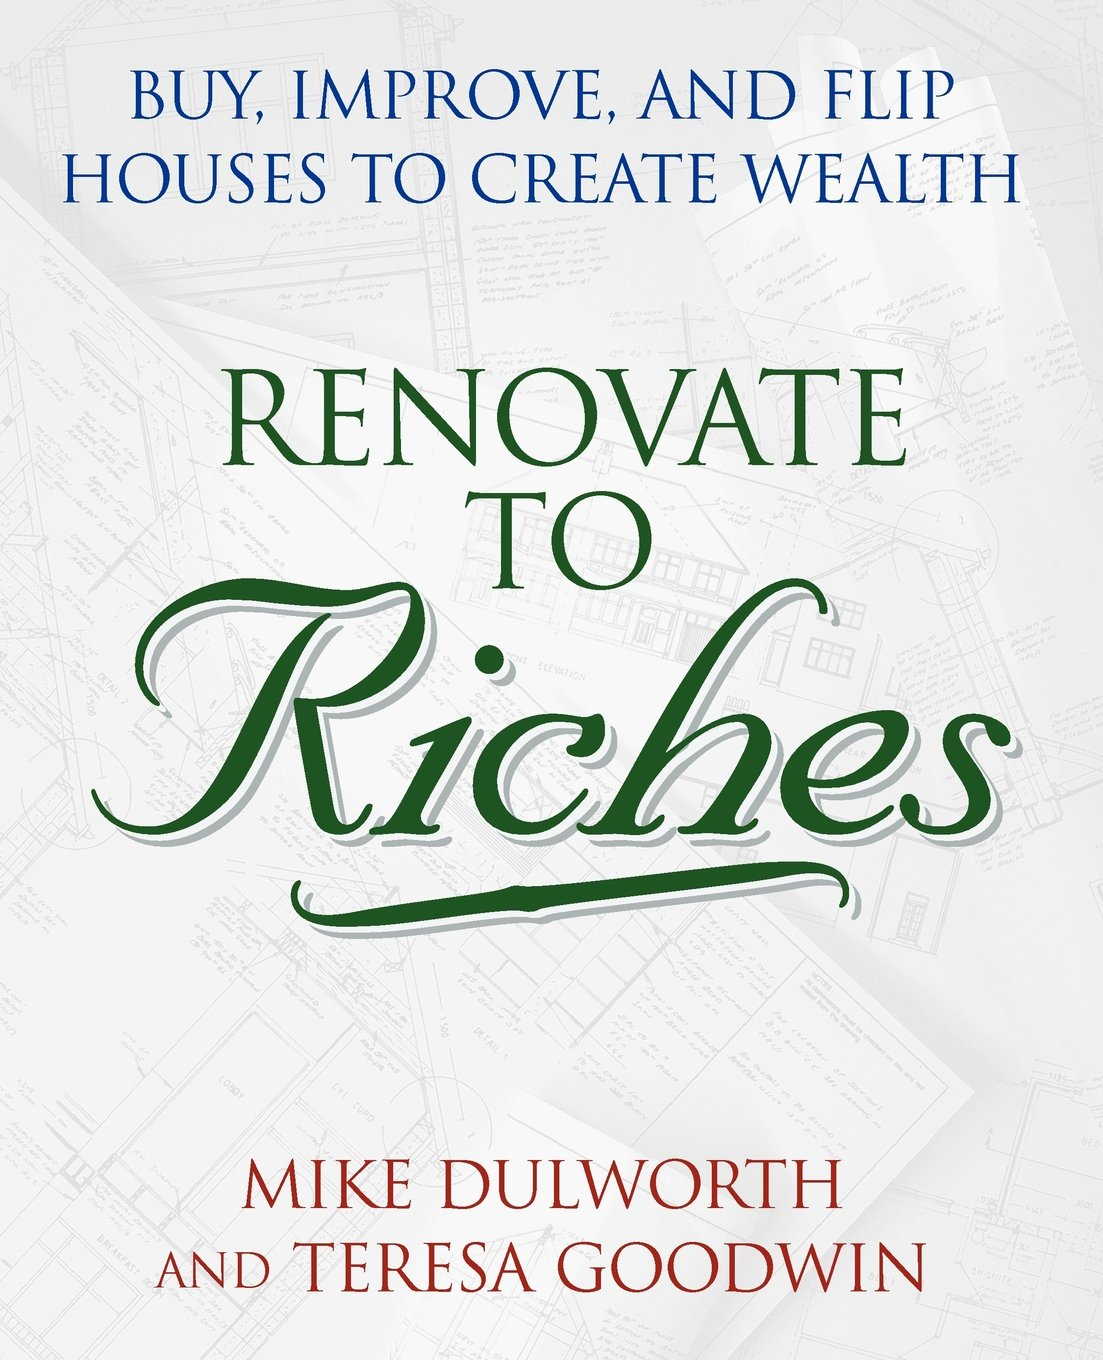 Renovate to Riches: Buy, Improve, and Flip Houses to Create Wealth free download